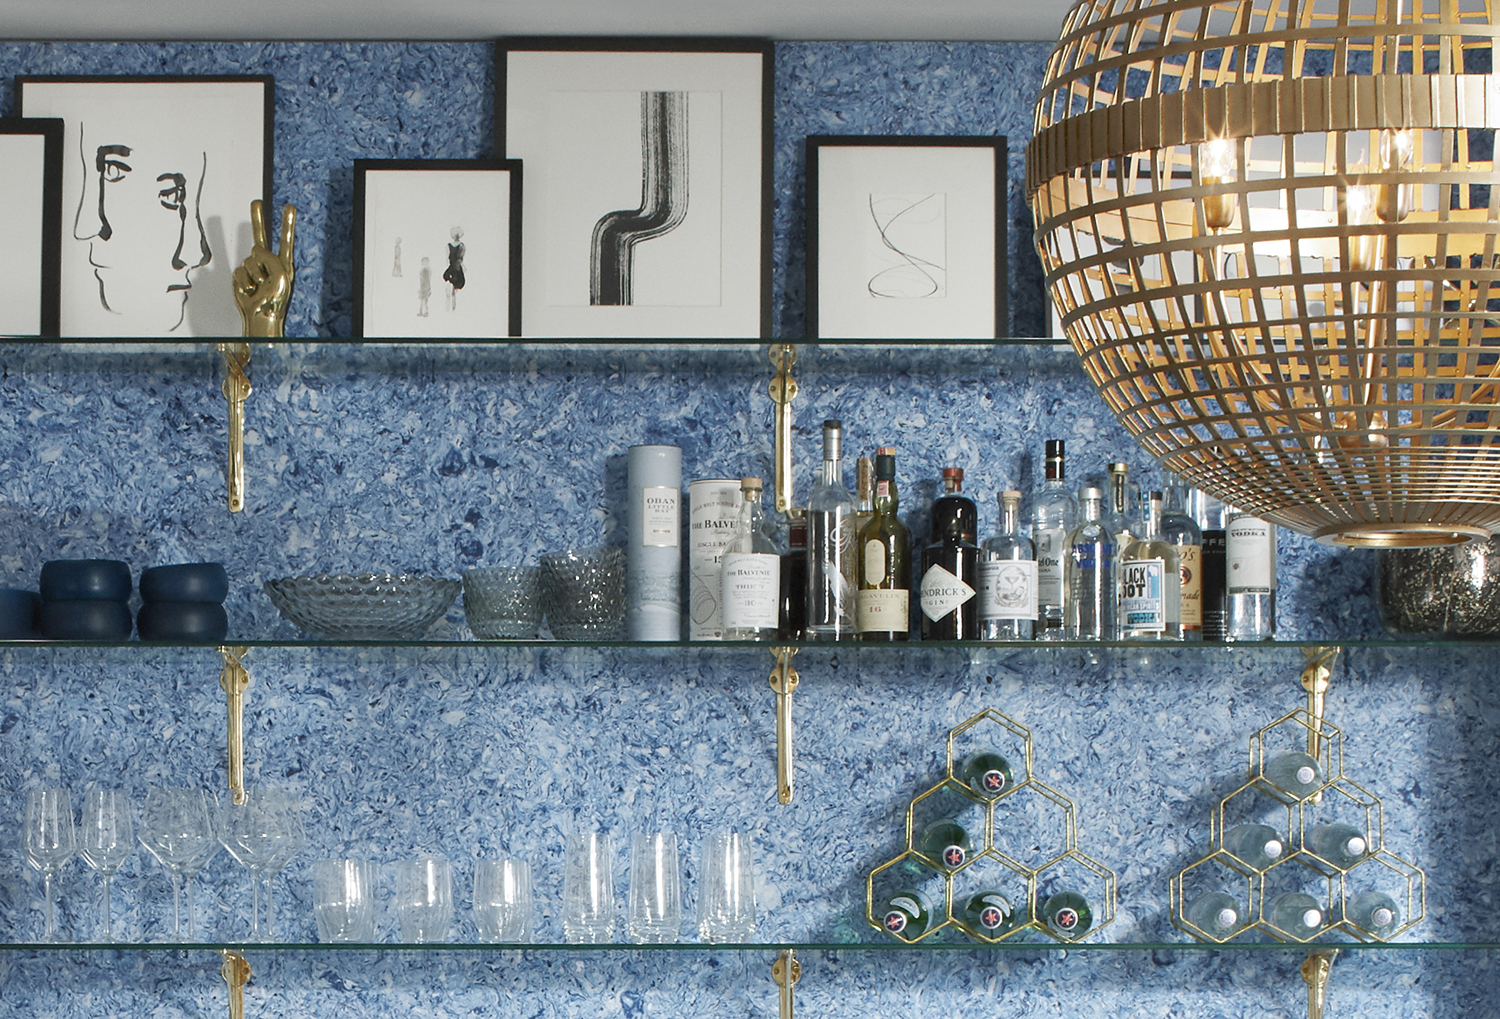 Using the bright blue wall material she designed, Kerrie Kelly created a vibrant backdrop for open shelving with a curated collection of glass and artwork.